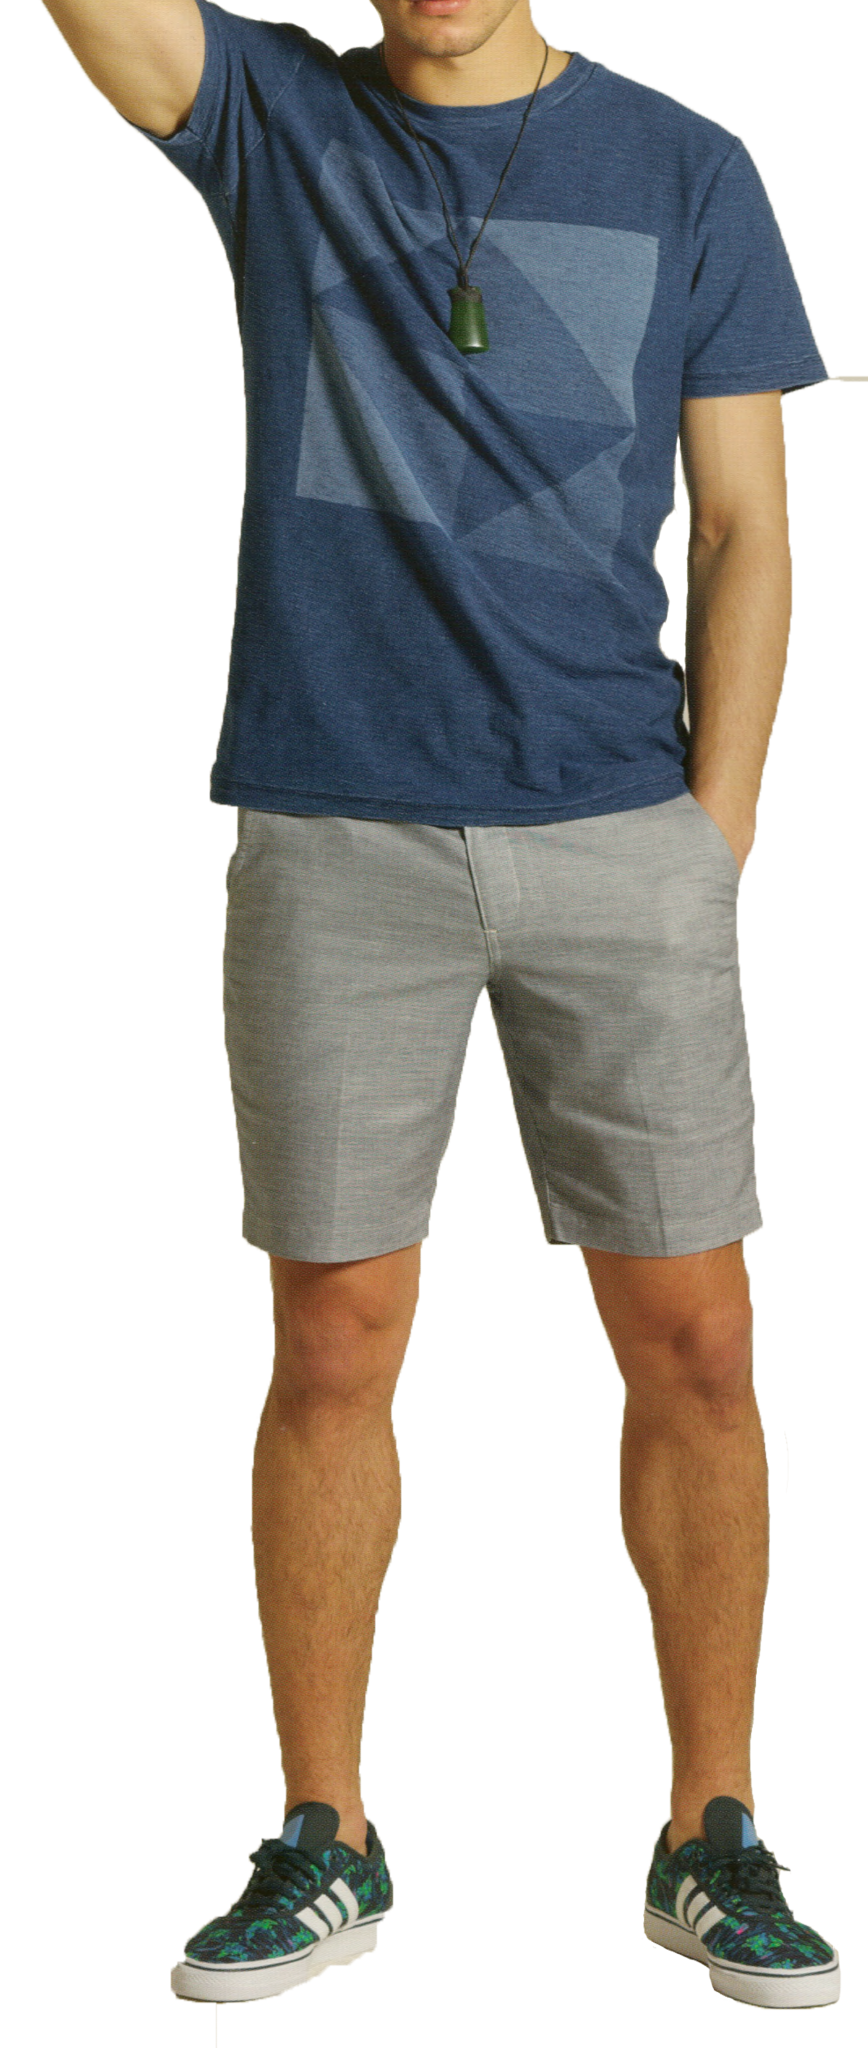 City Club Jetty Shorts - Harry's for Menswear